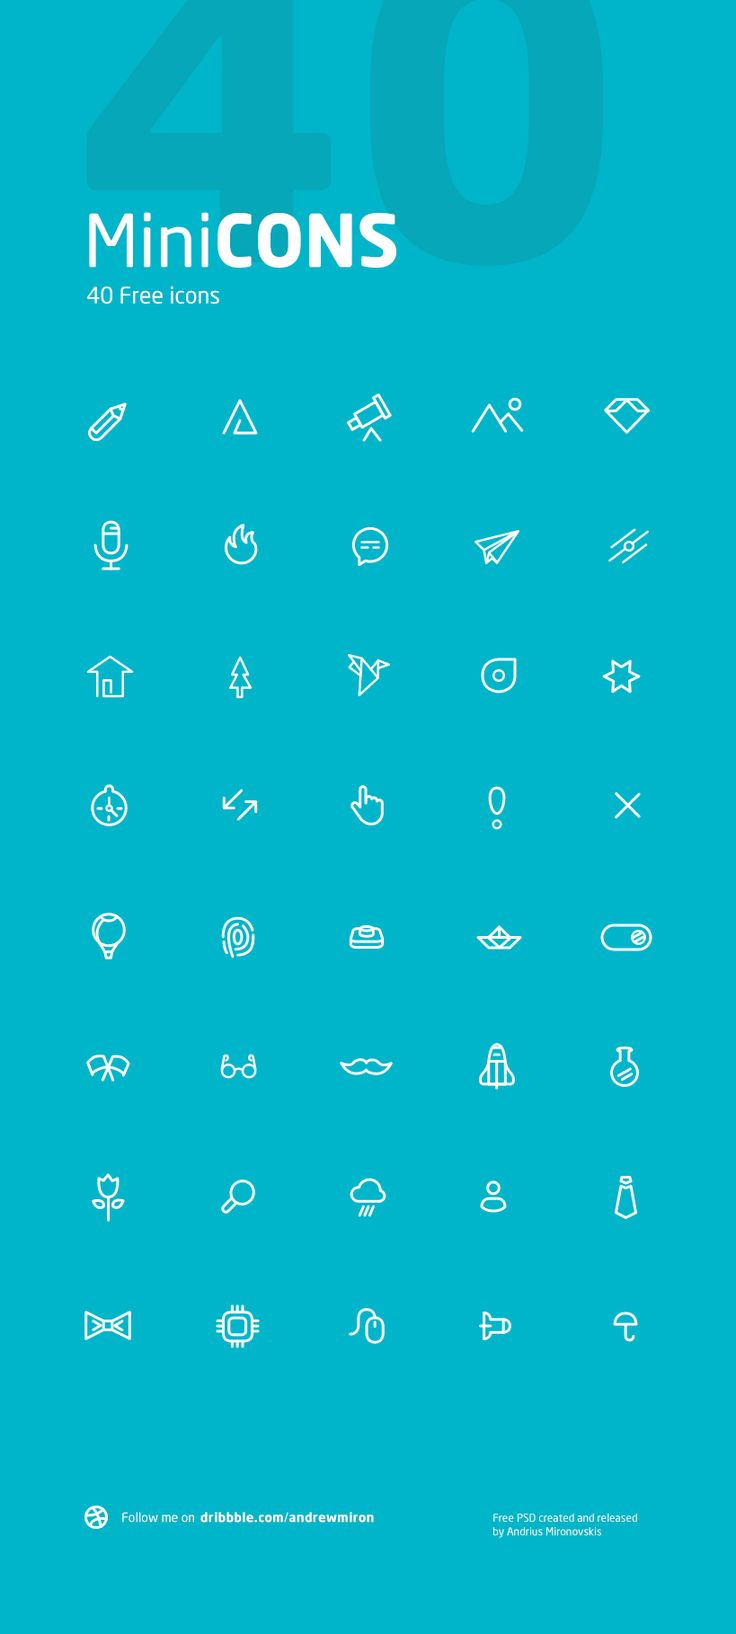 MiniCONS Free Creative Icons, #Free, #Graphic #Design, #Icon, #Outline, #PSD, #Resource